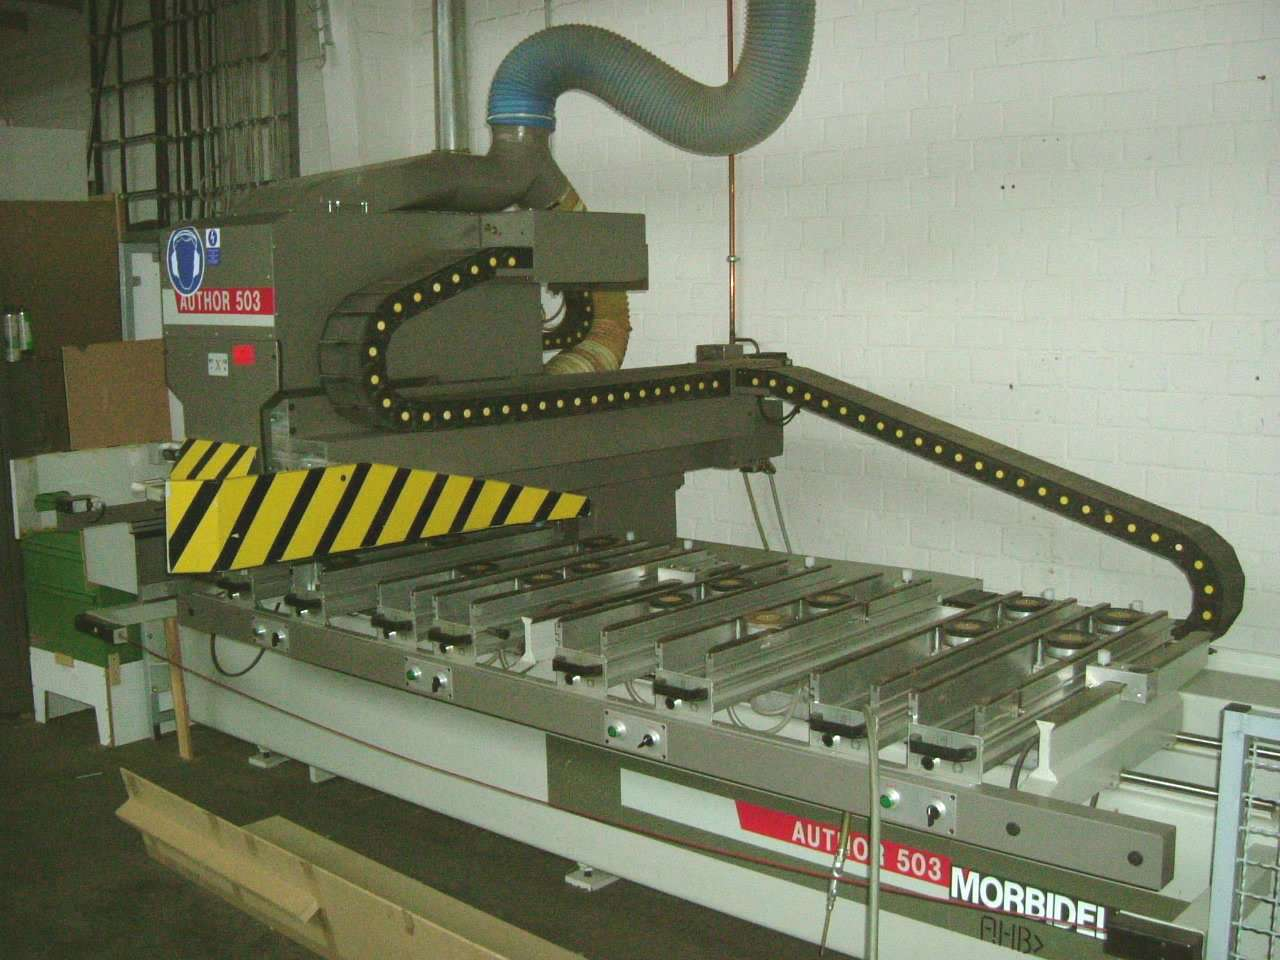 CNC Morbidelli author 503 STC